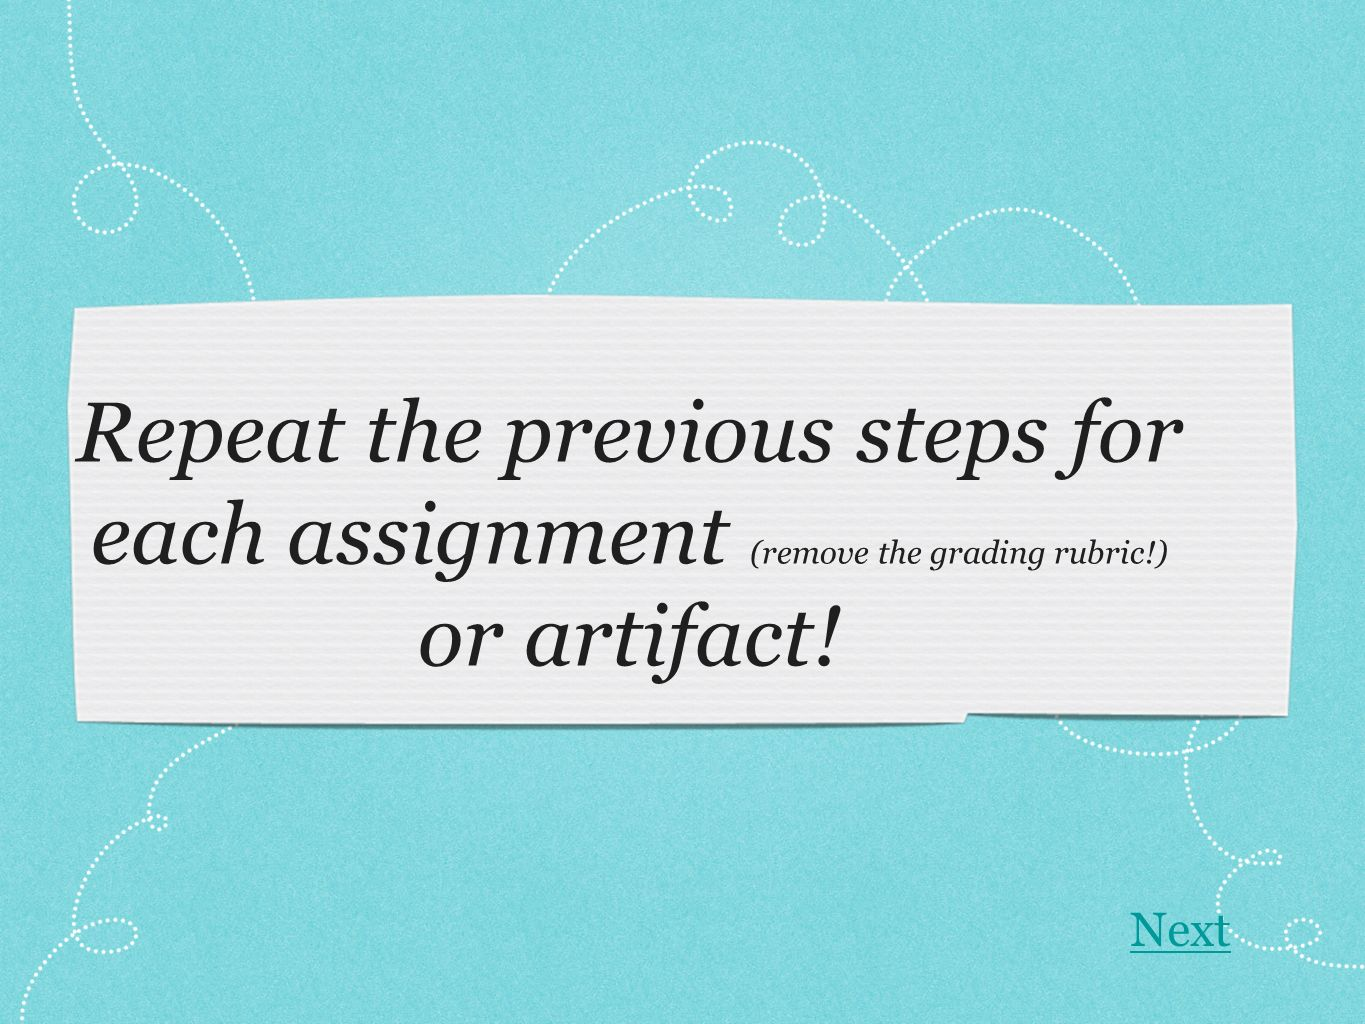 Repeat the previous steps for each assignment (remove the grading rubric!) or artifact! Next